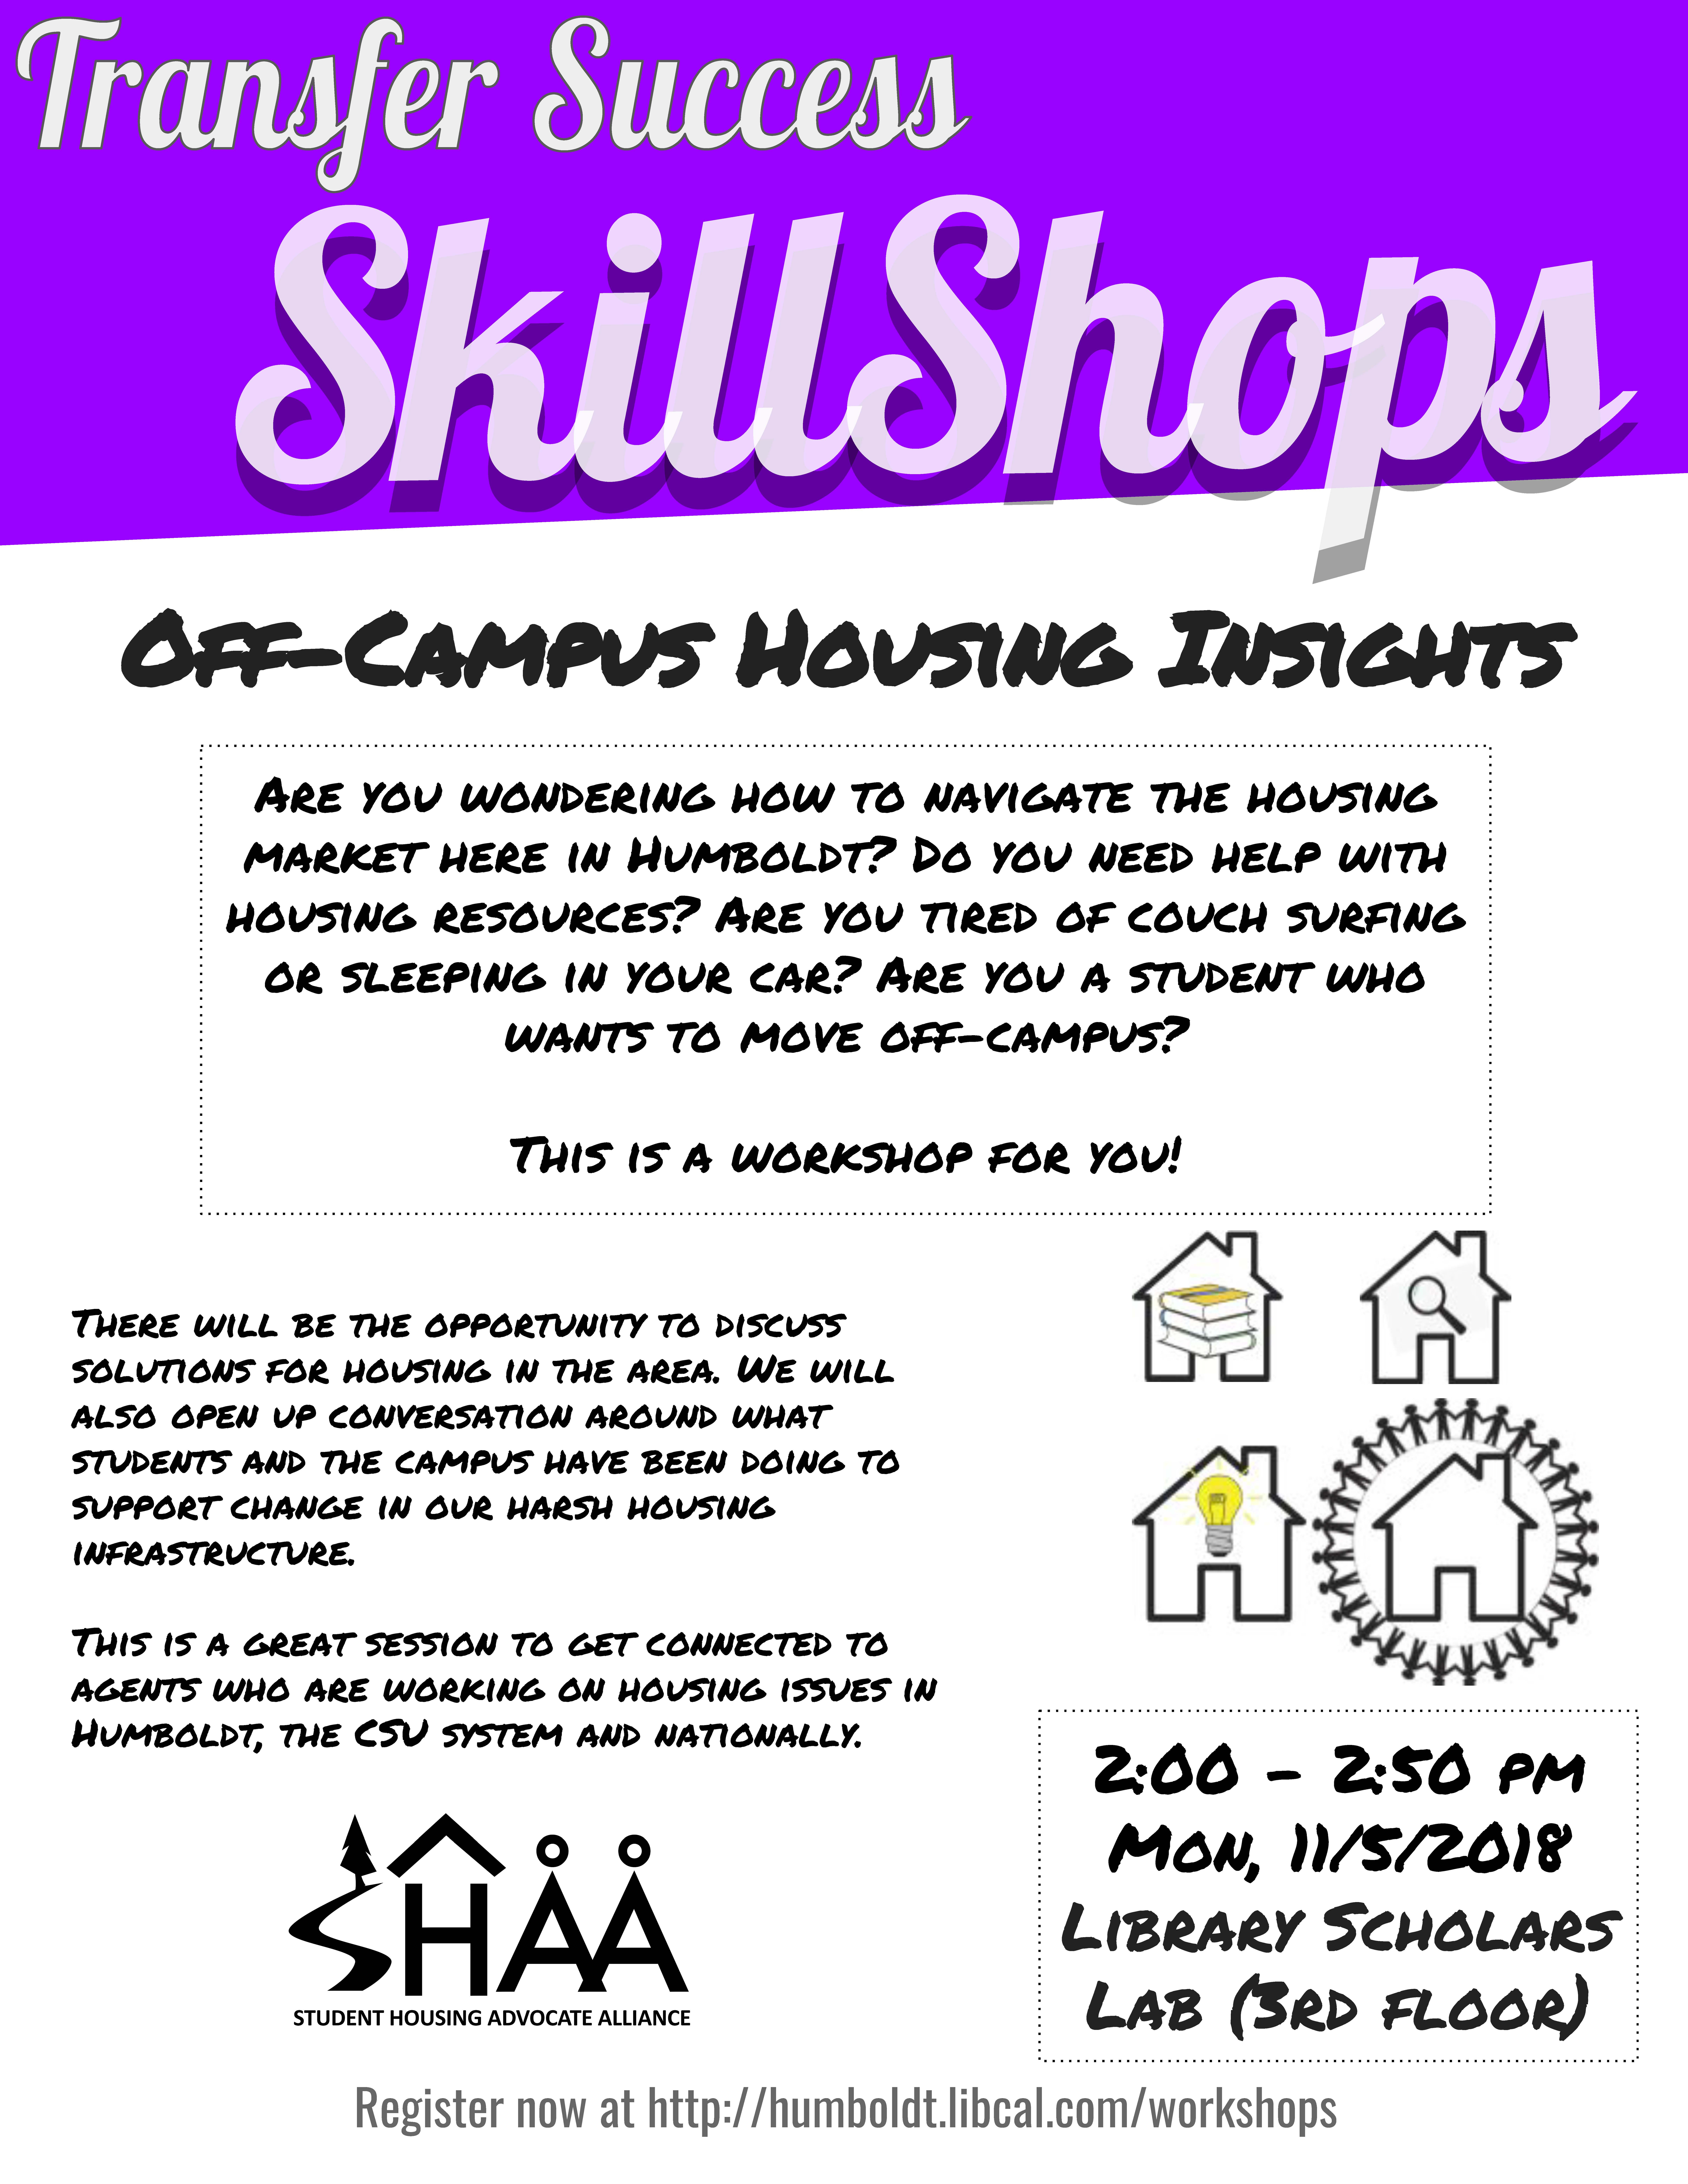 Off-Campus Housing Insights